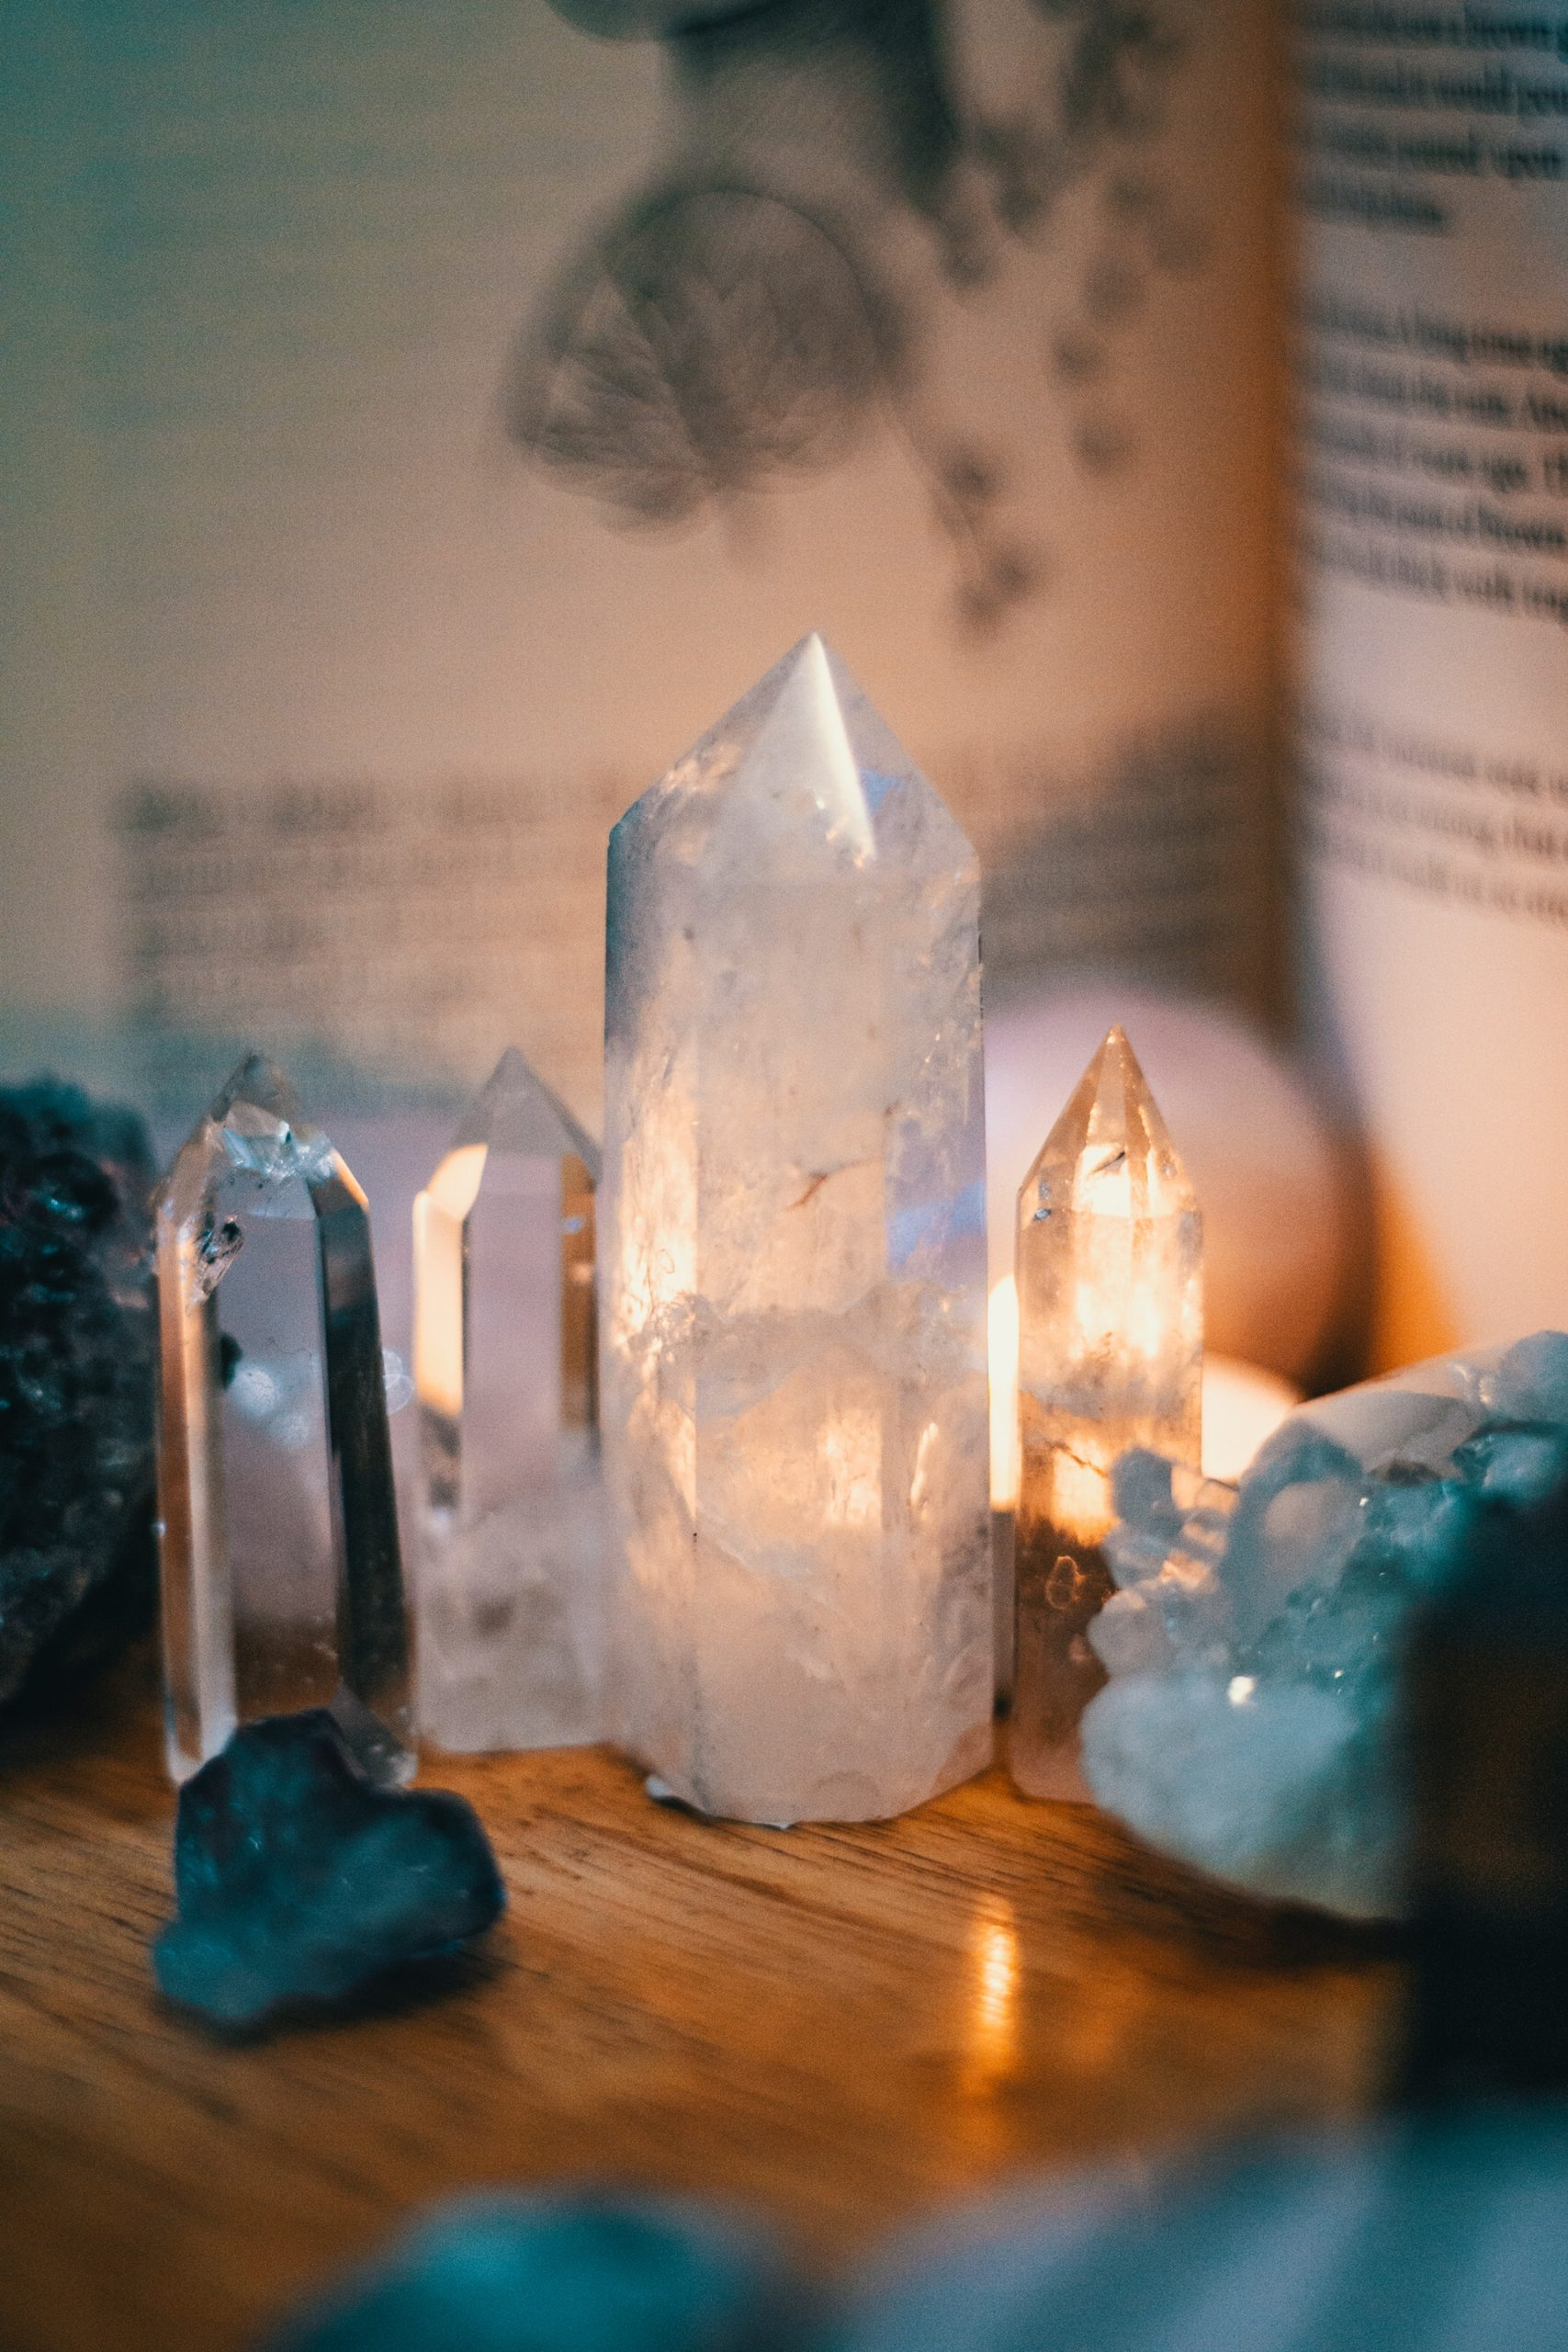 Wiccan Crystal Grids